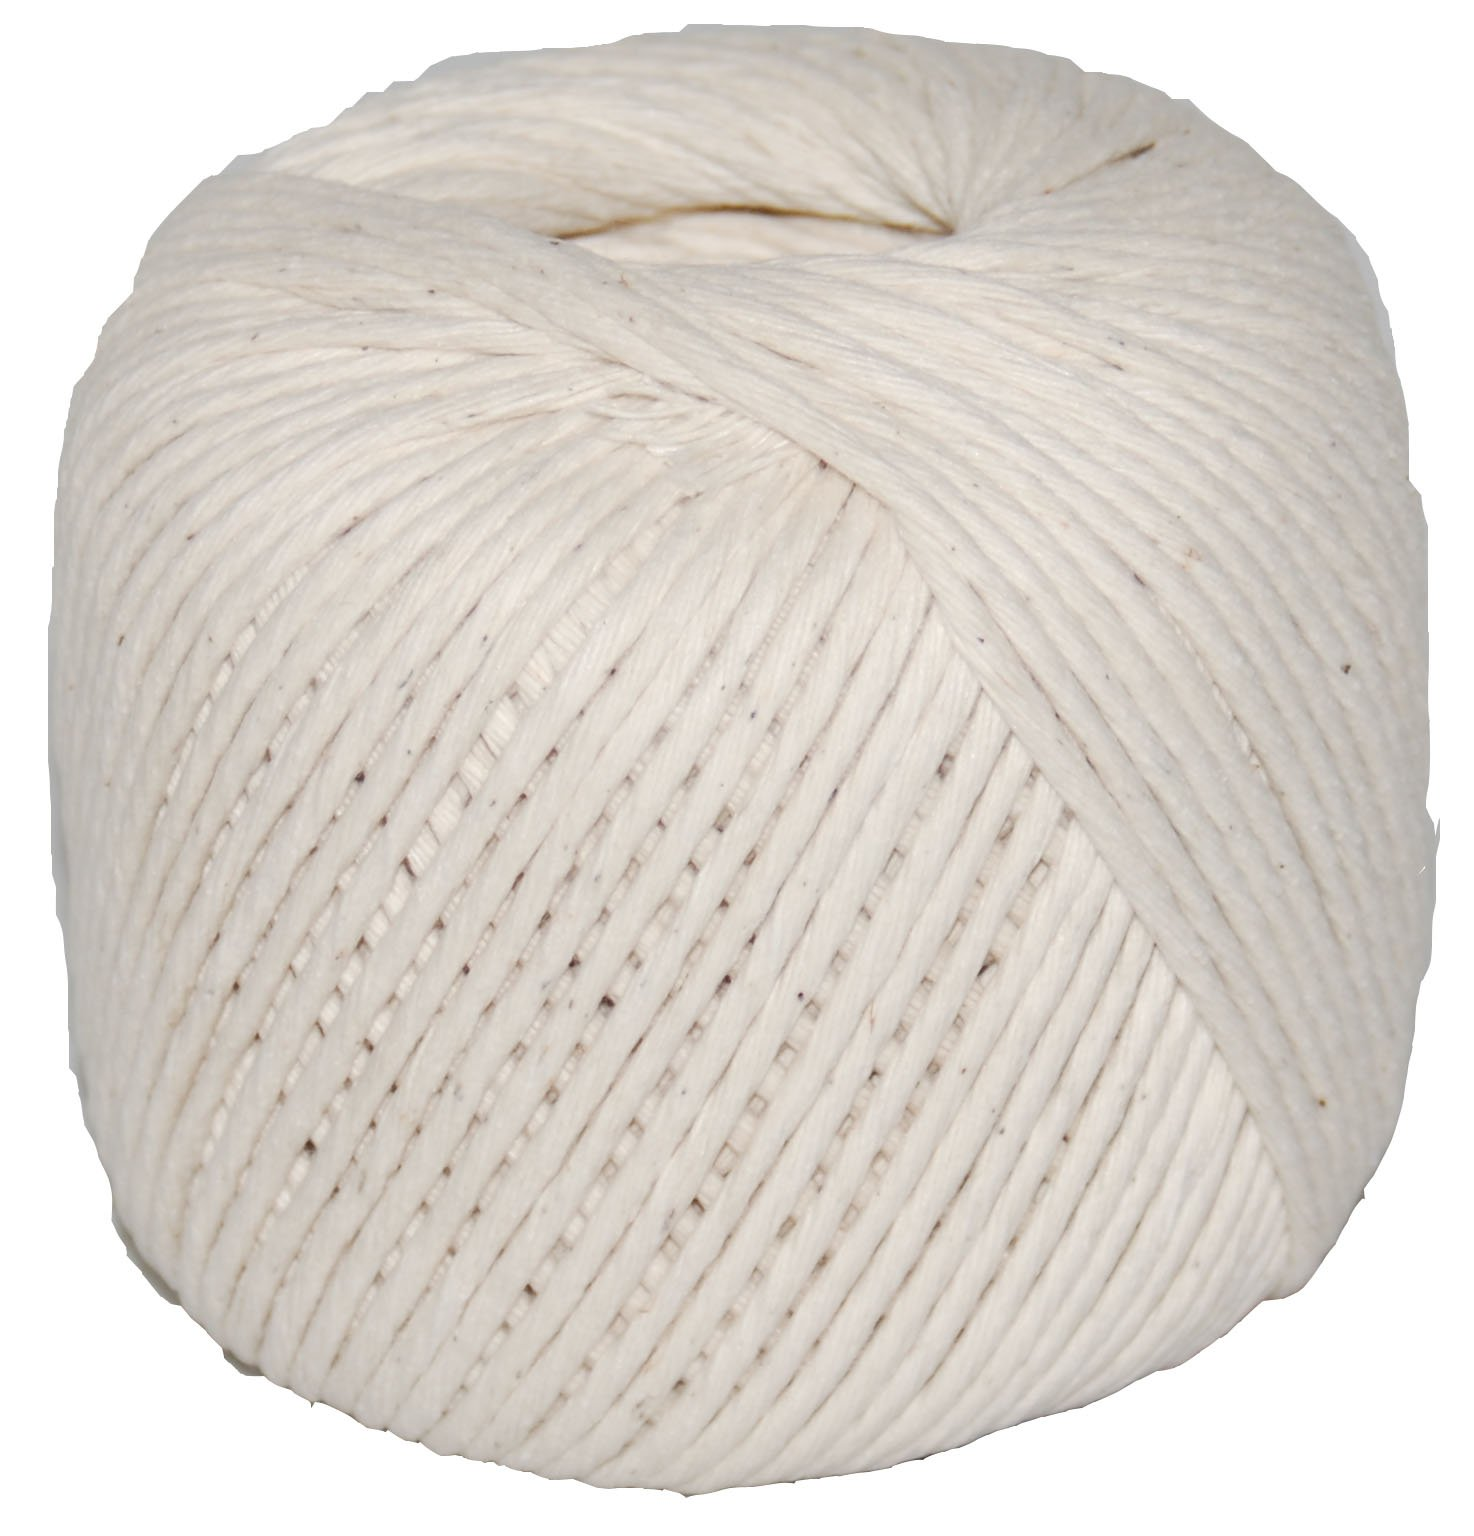 T.W Evans Cordage 09-248 Number-24 Polished Beef Cotton Twine with 500-Feet Ball